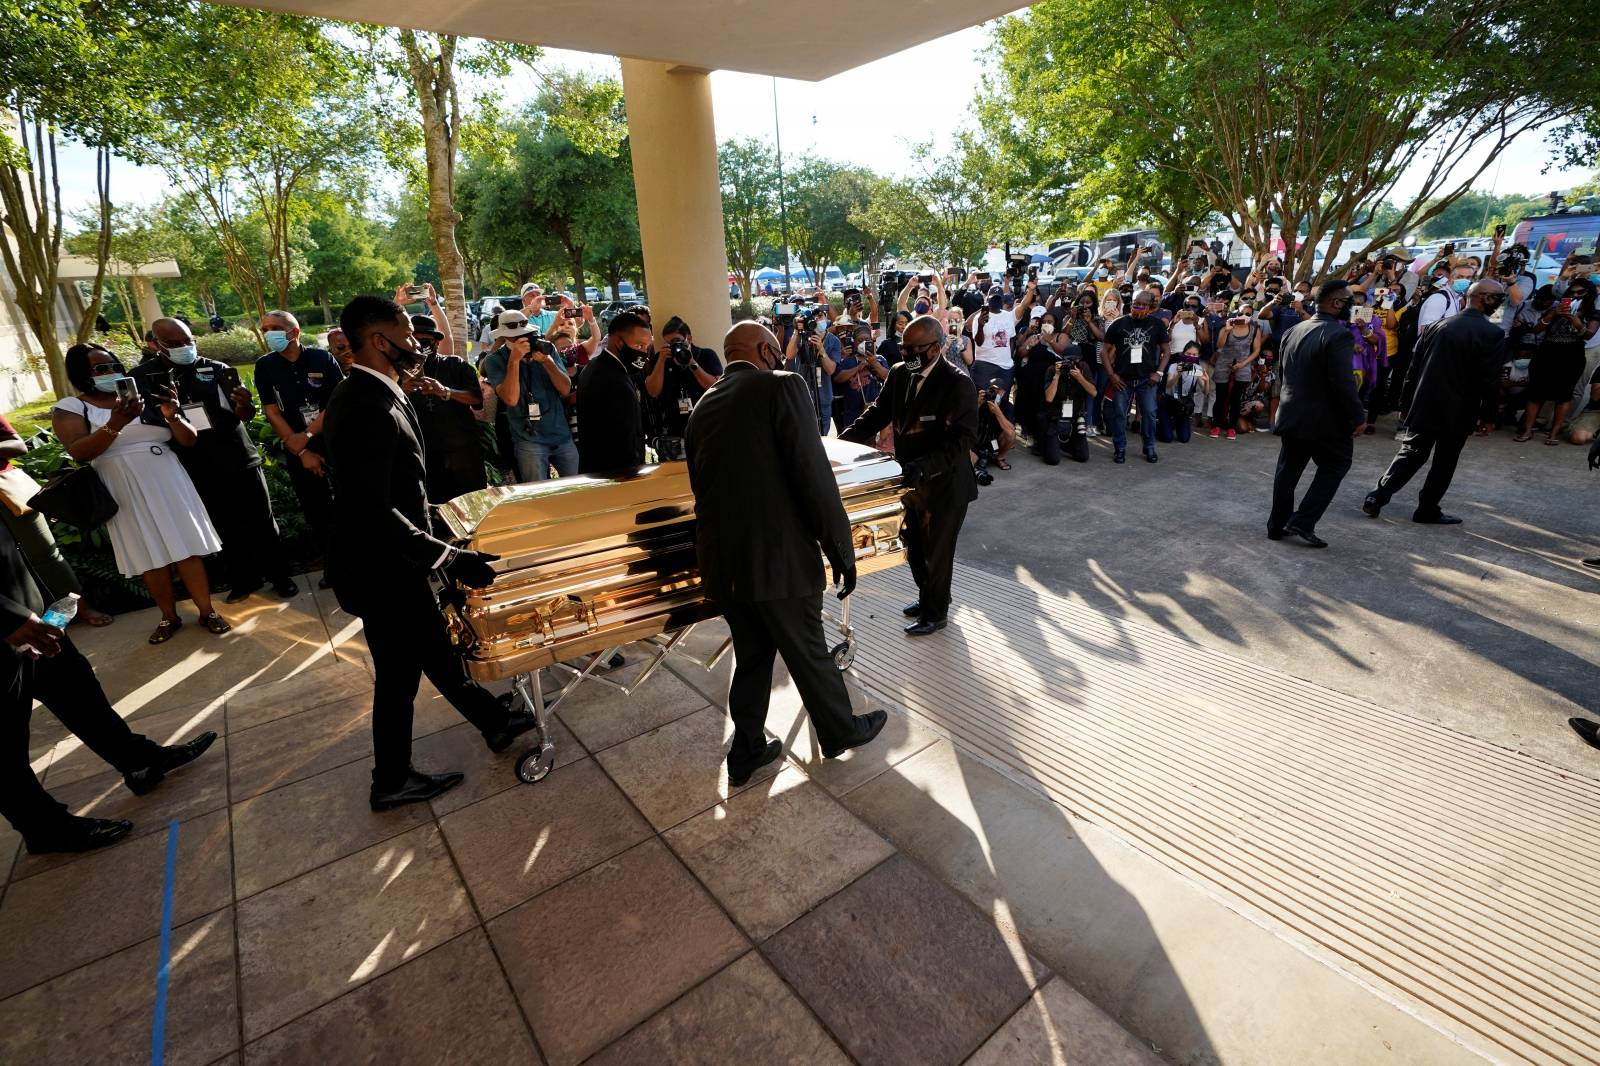 The casket of George Floyd is removed after a public visitation for Floyd